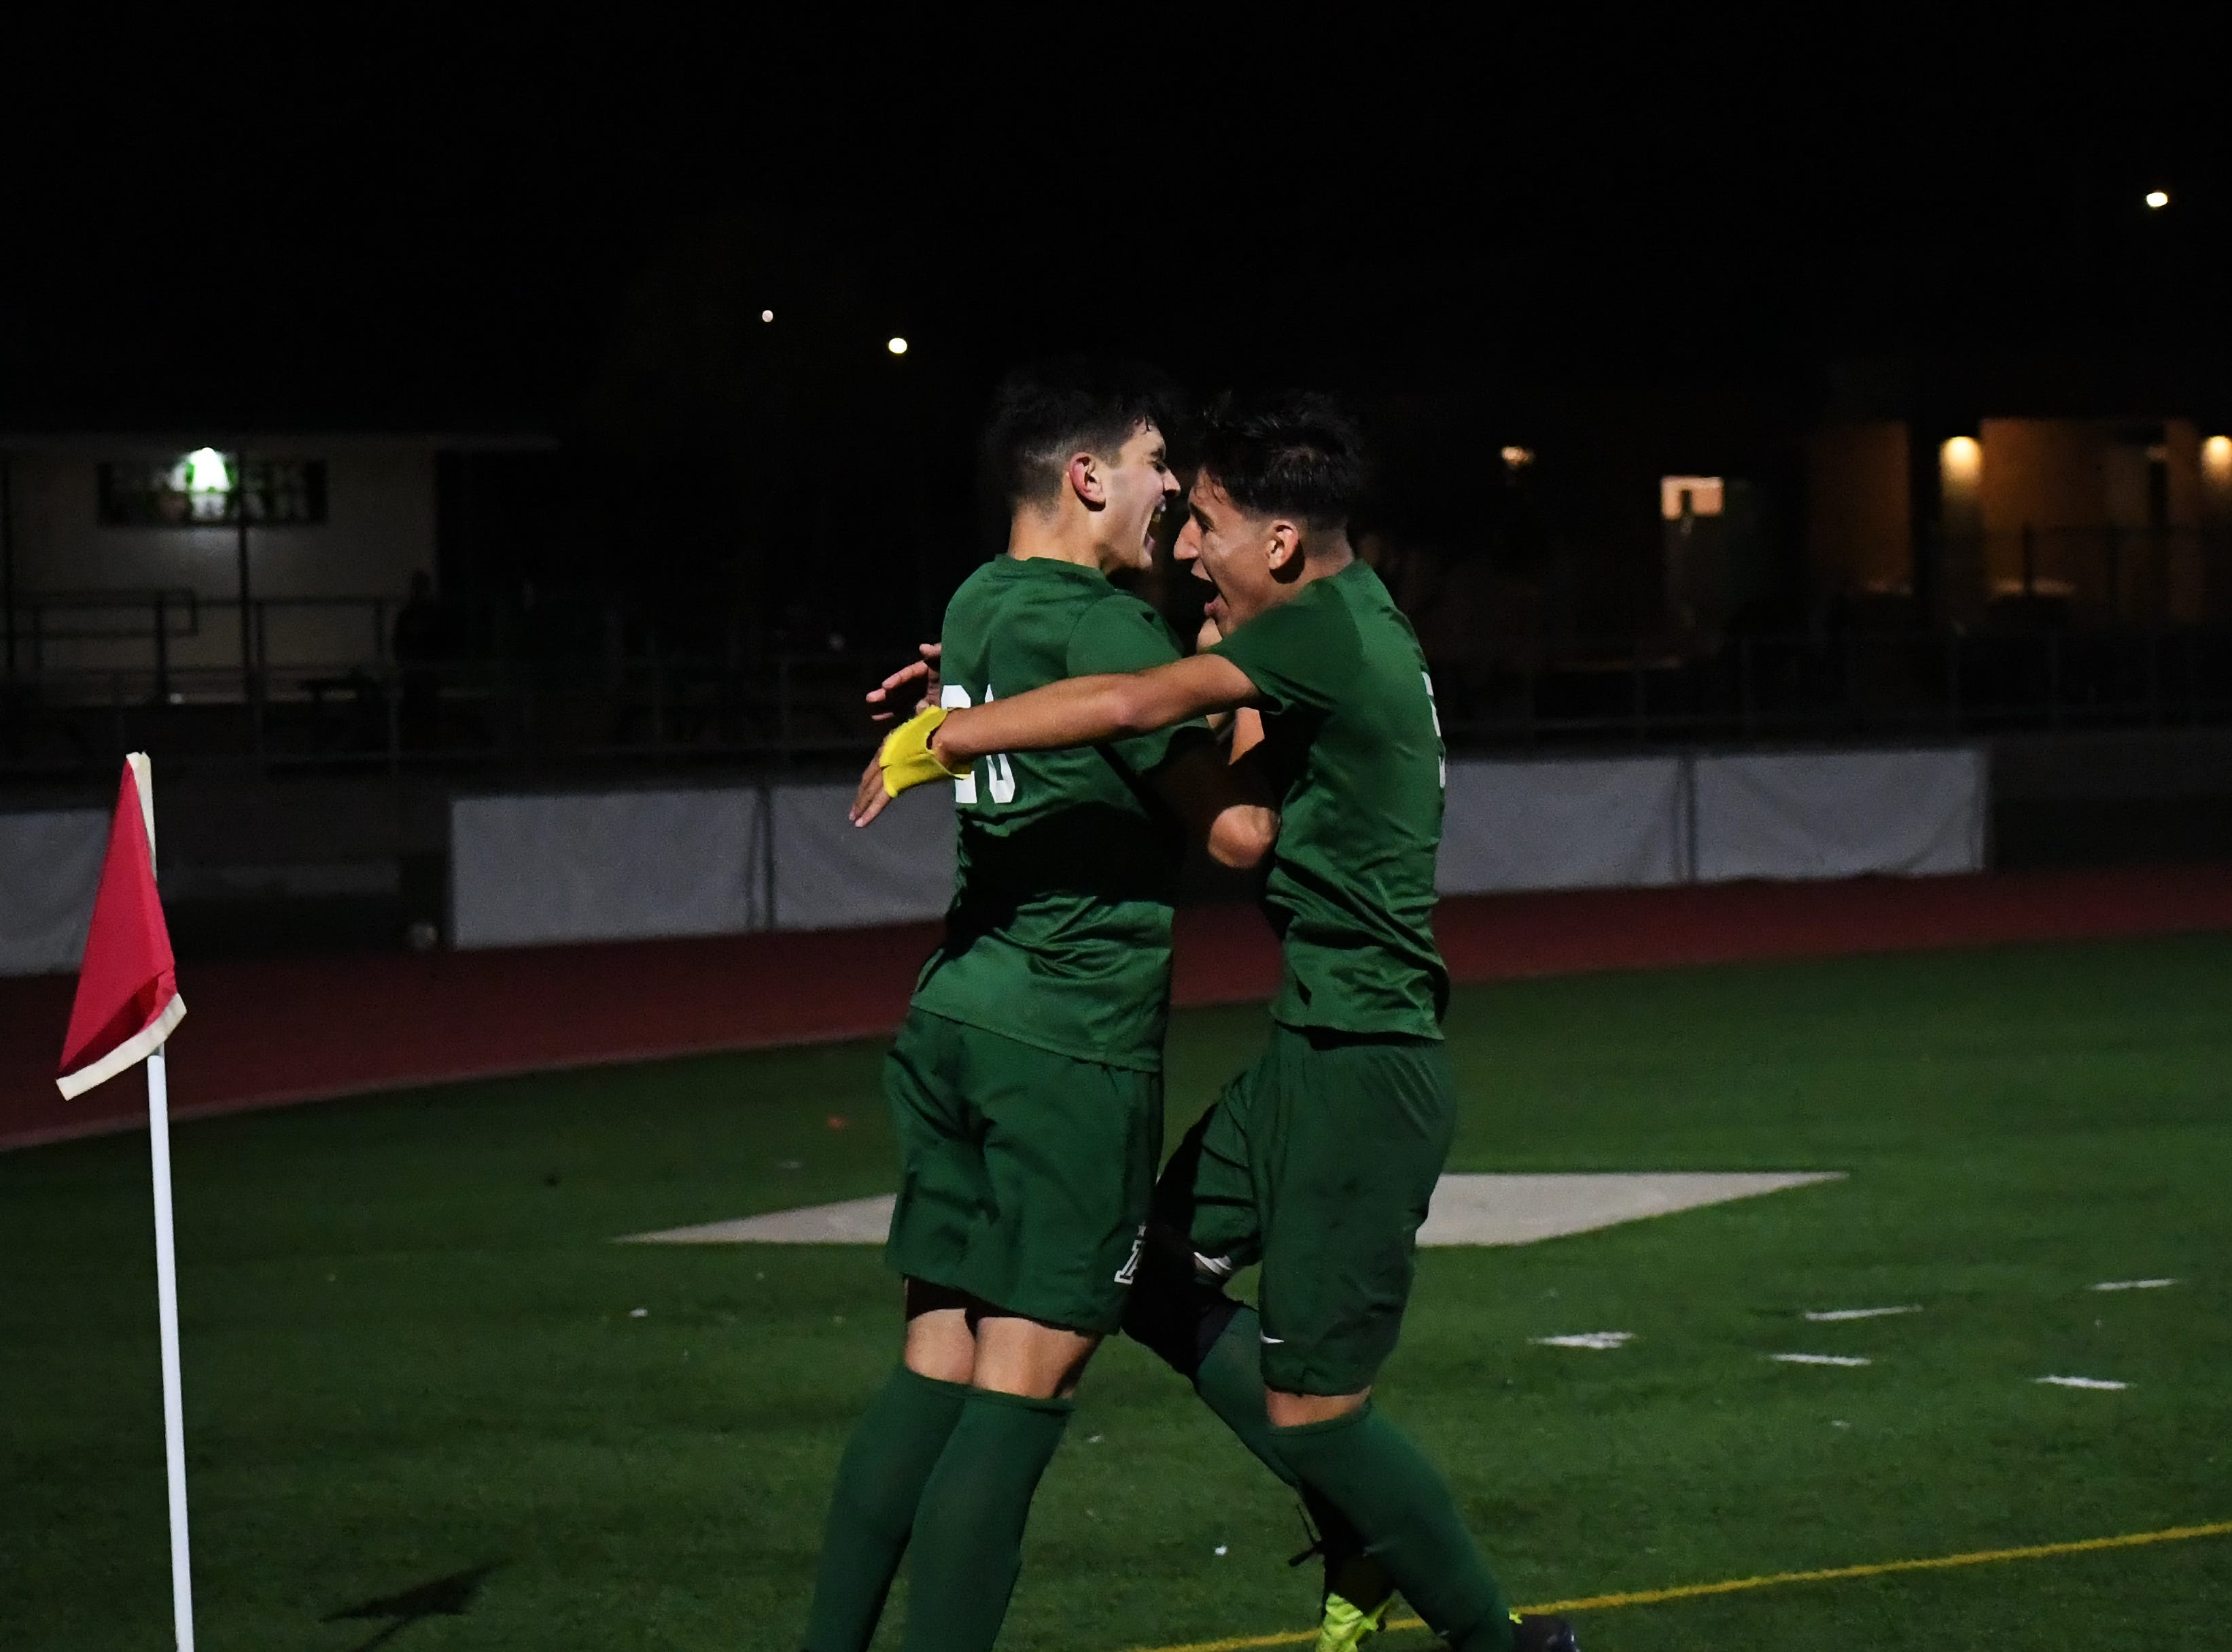 Alisal midfielders Abraham Montaño (20) and Osvaldo Avalos (5) celebrate the former's goal.